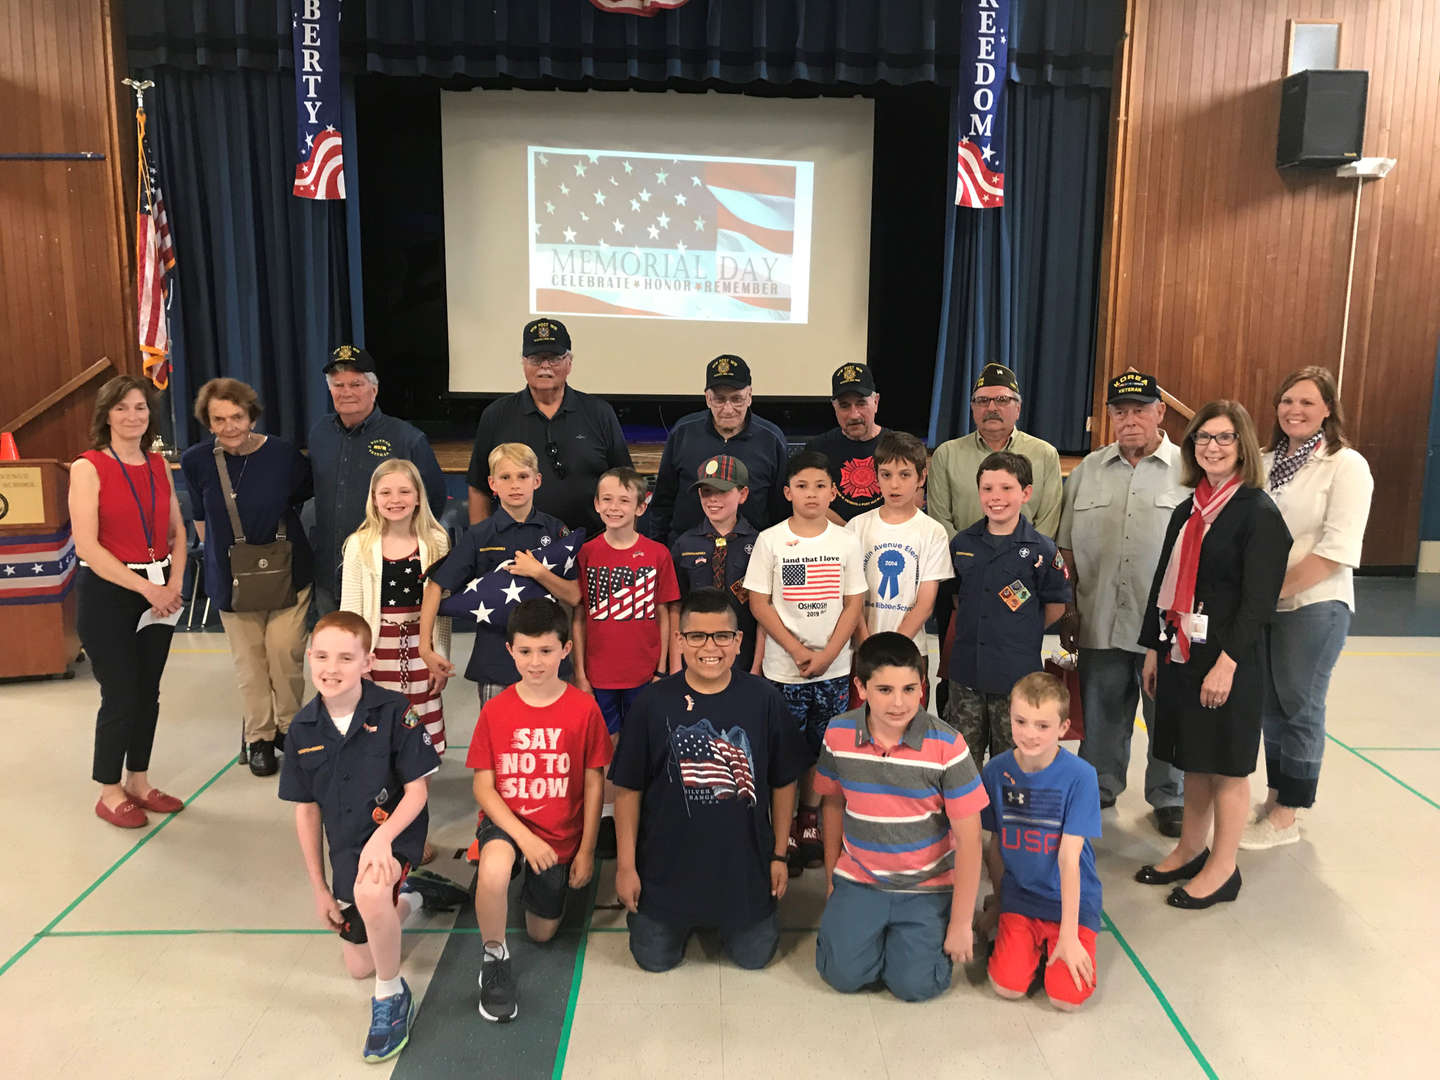 Group picture of students and veterans for Memorial Day tribute